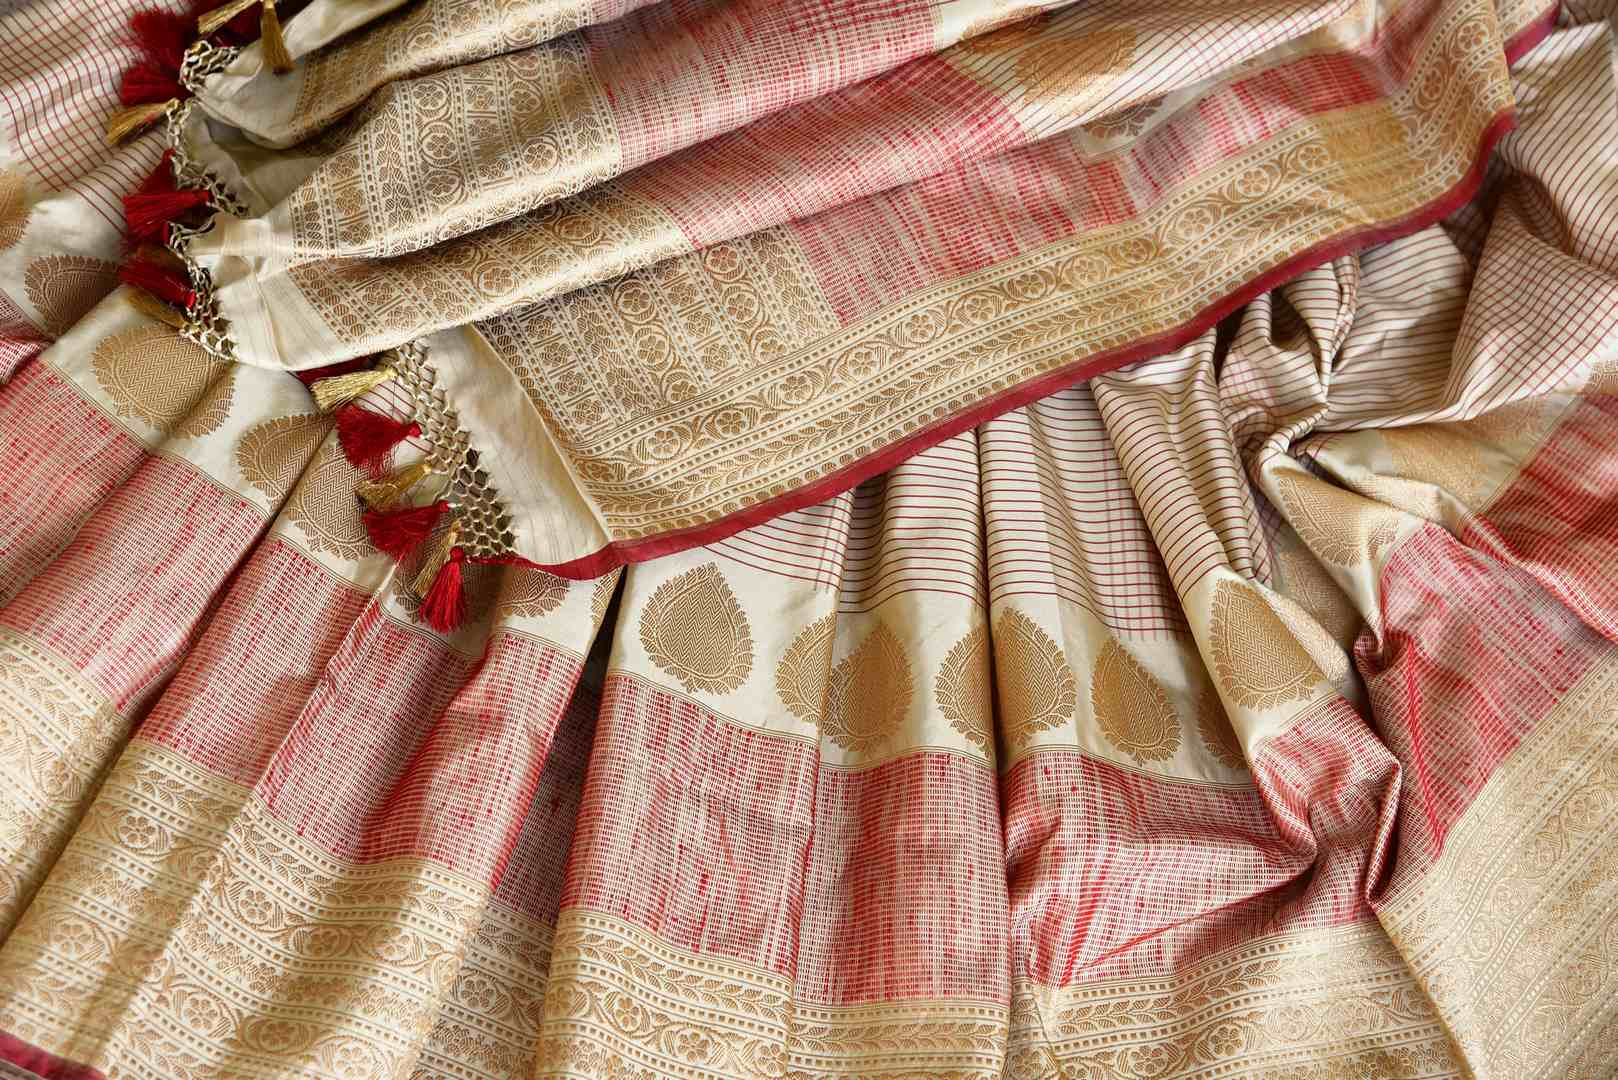 Embrace the traditional banarsi silk sari in white and red hues. Slip into this vibrant designer saree to steal the hearts away at weddings and parties. Pair this with red and gold embroidered blouse. Shop such handloom sari, silk saree, printed sarees online or visit Pure Elegance store, USA. -details